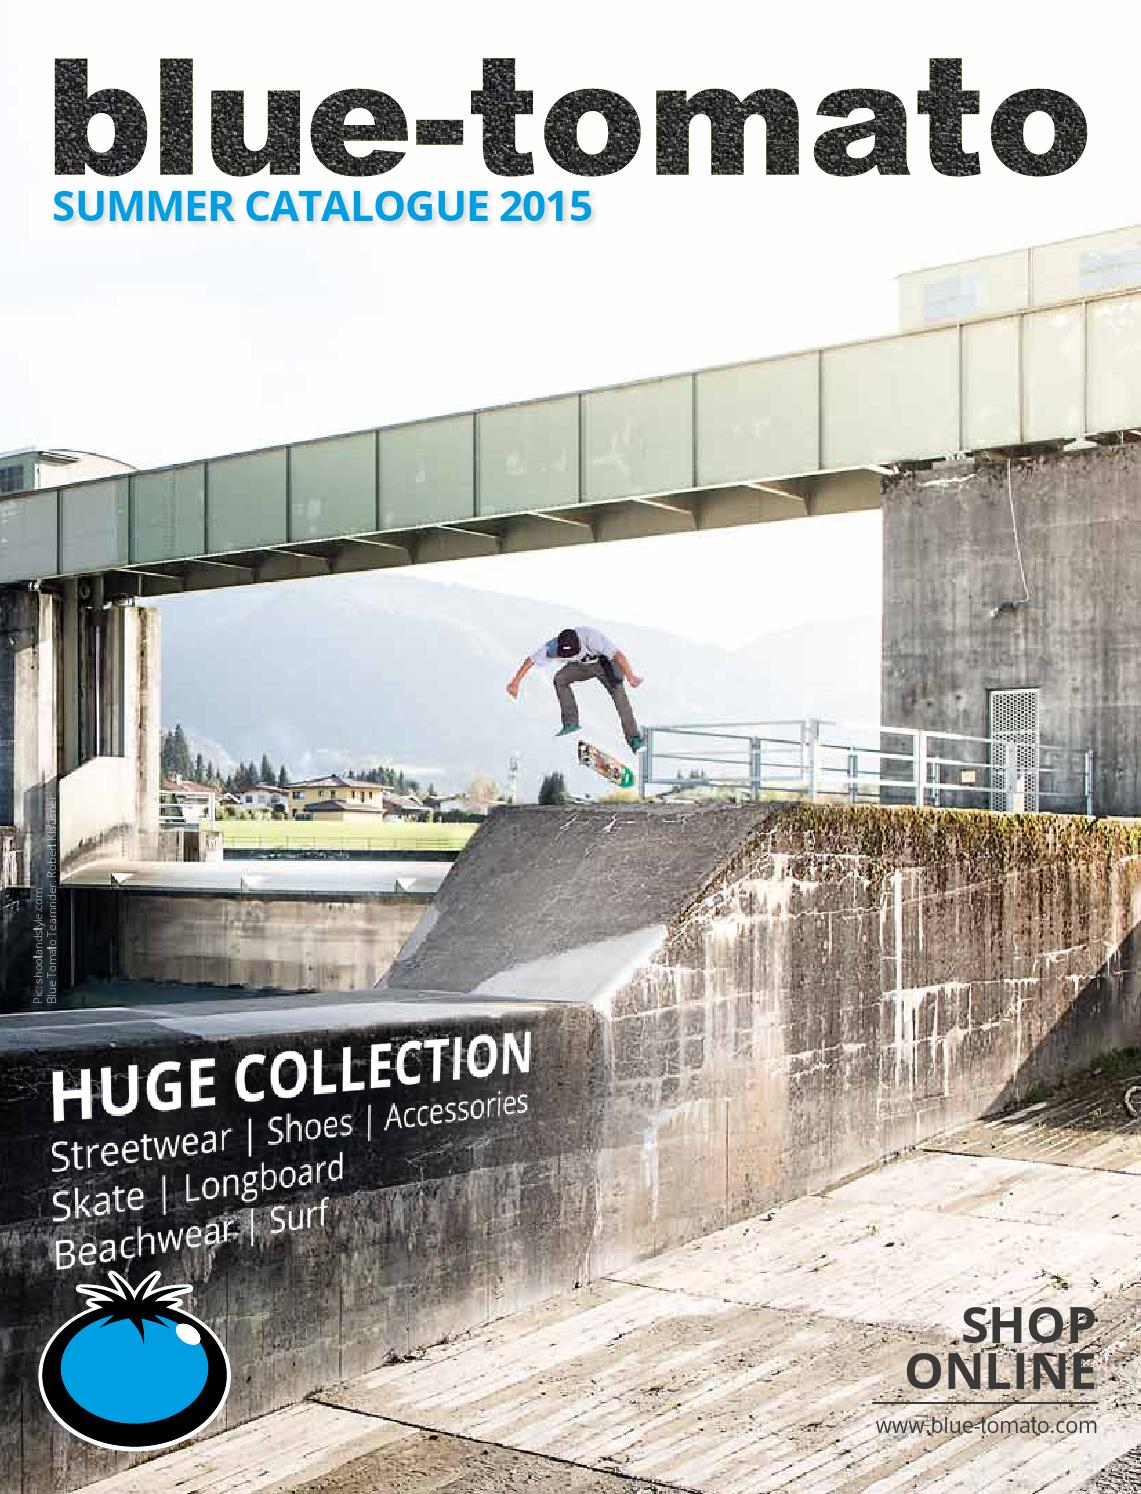 a2f81a793a0b6 Blue Tomato Summer Catalogue 2015 by Blue Tomato - issuu